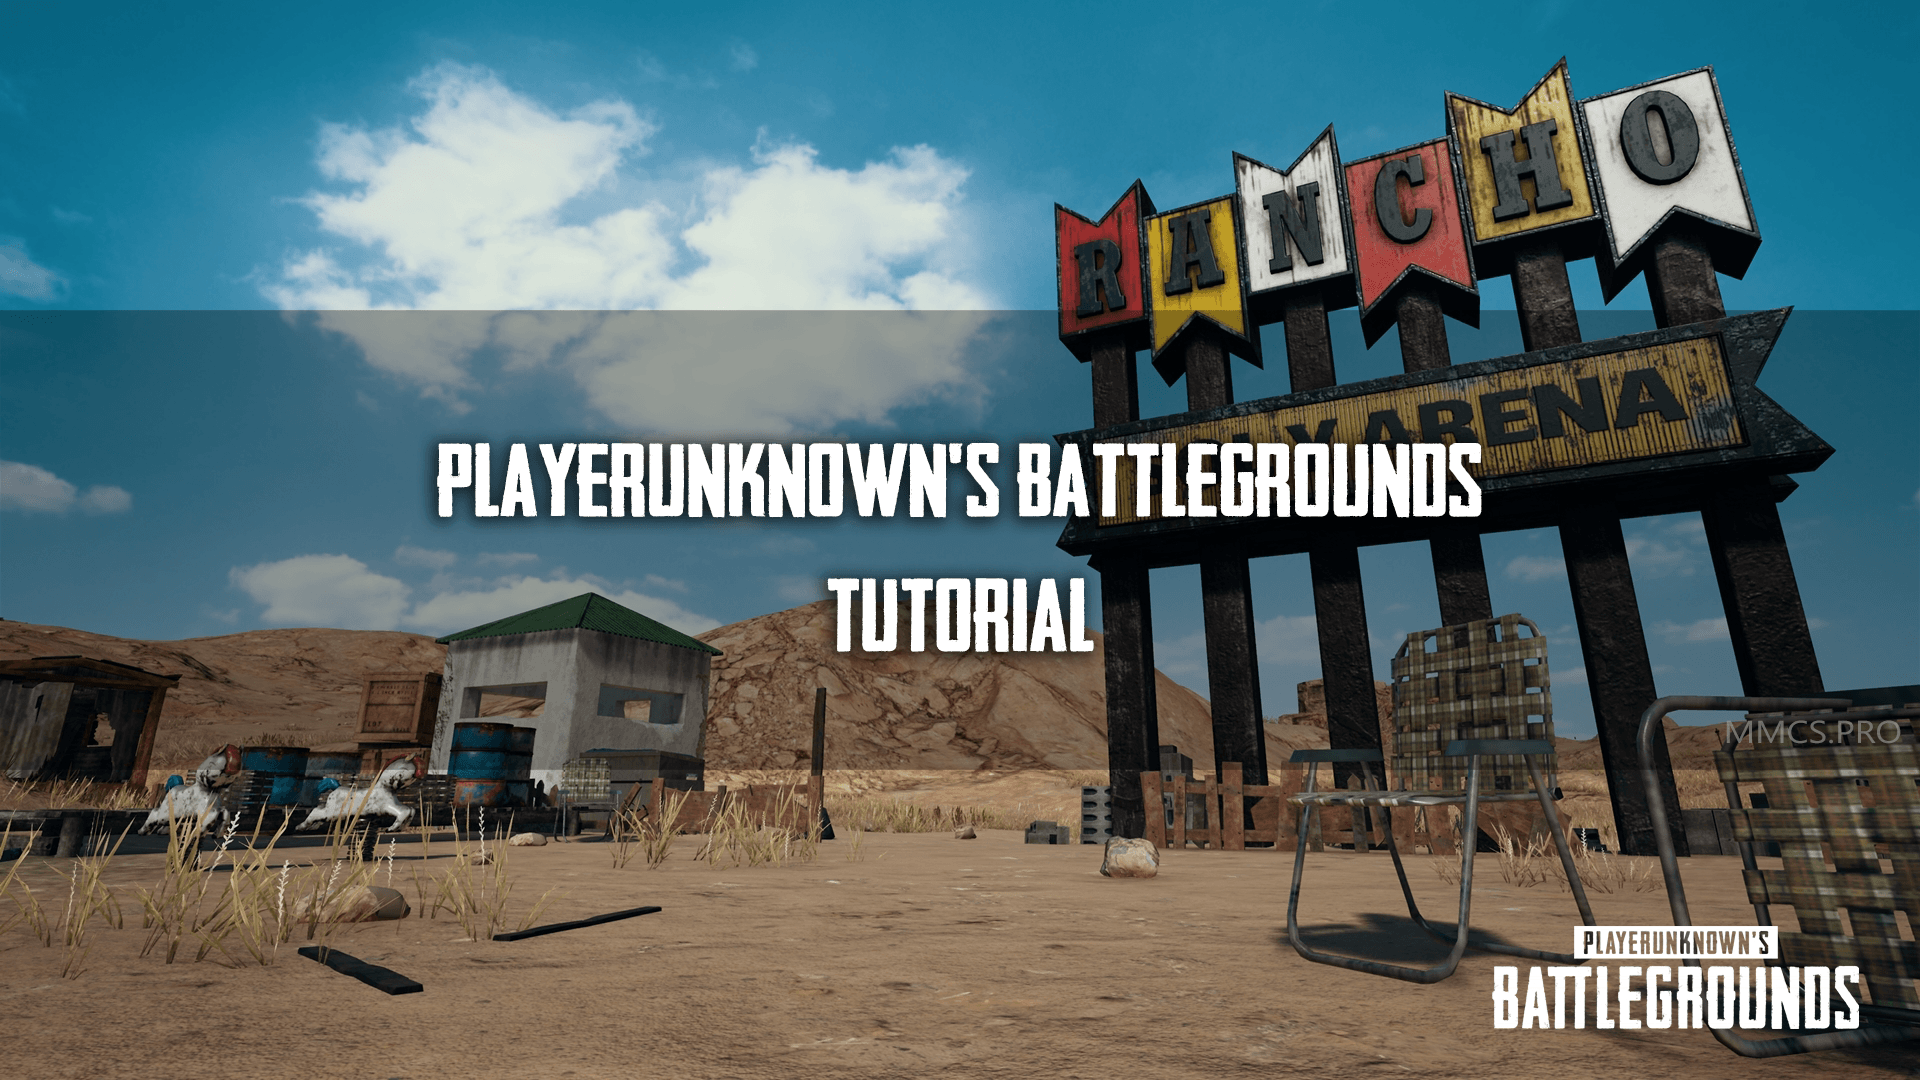 https://mmcs.pro/gajdy-po-igre-playerunknowns-battlegrounds/